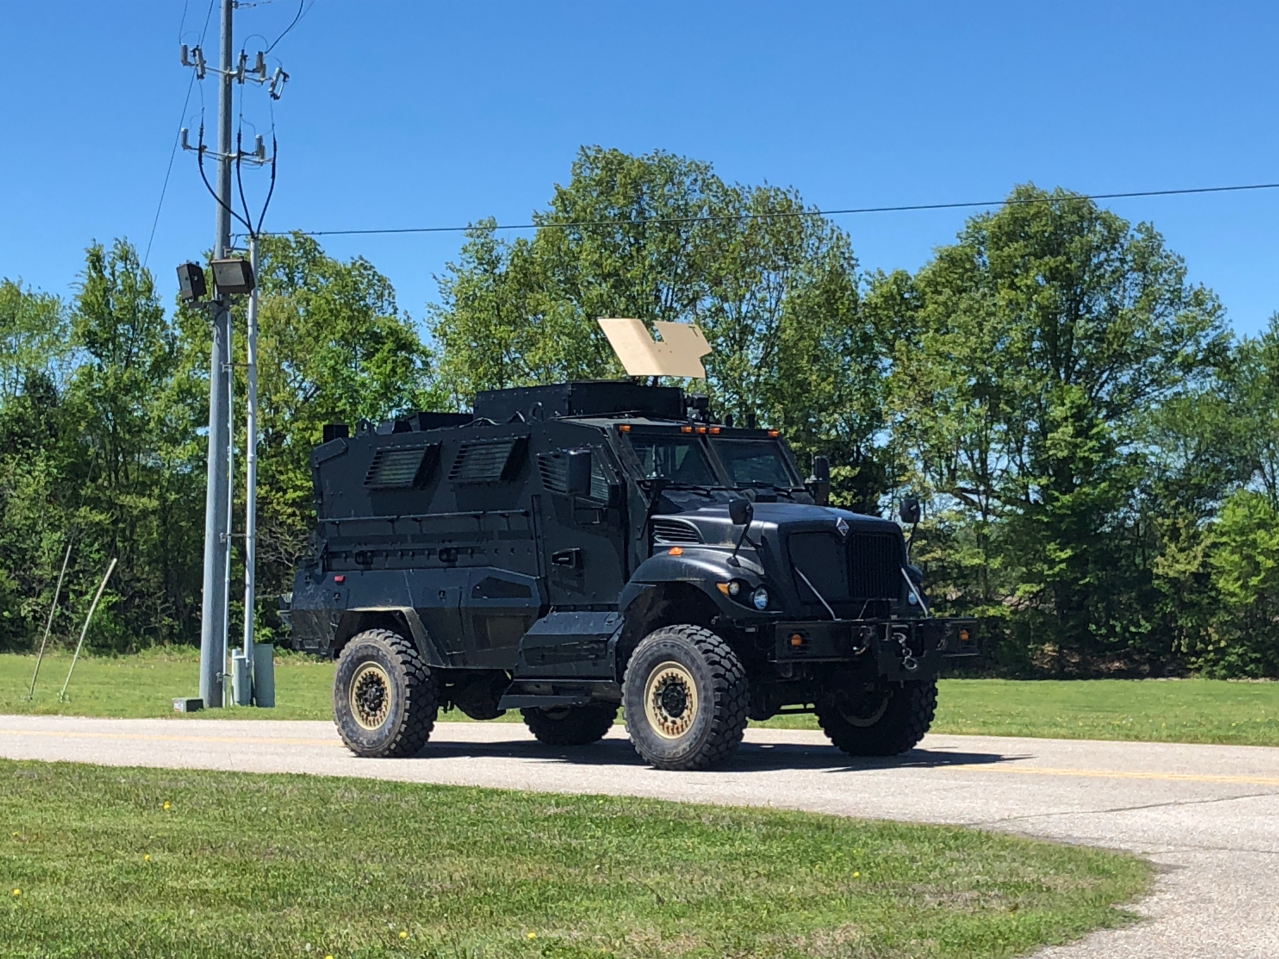 An armored vehicle prepares to move closer to the scene of an allegedly armed suspect barricaded in a Friendship residence Saturday at around 12:45 p.m.